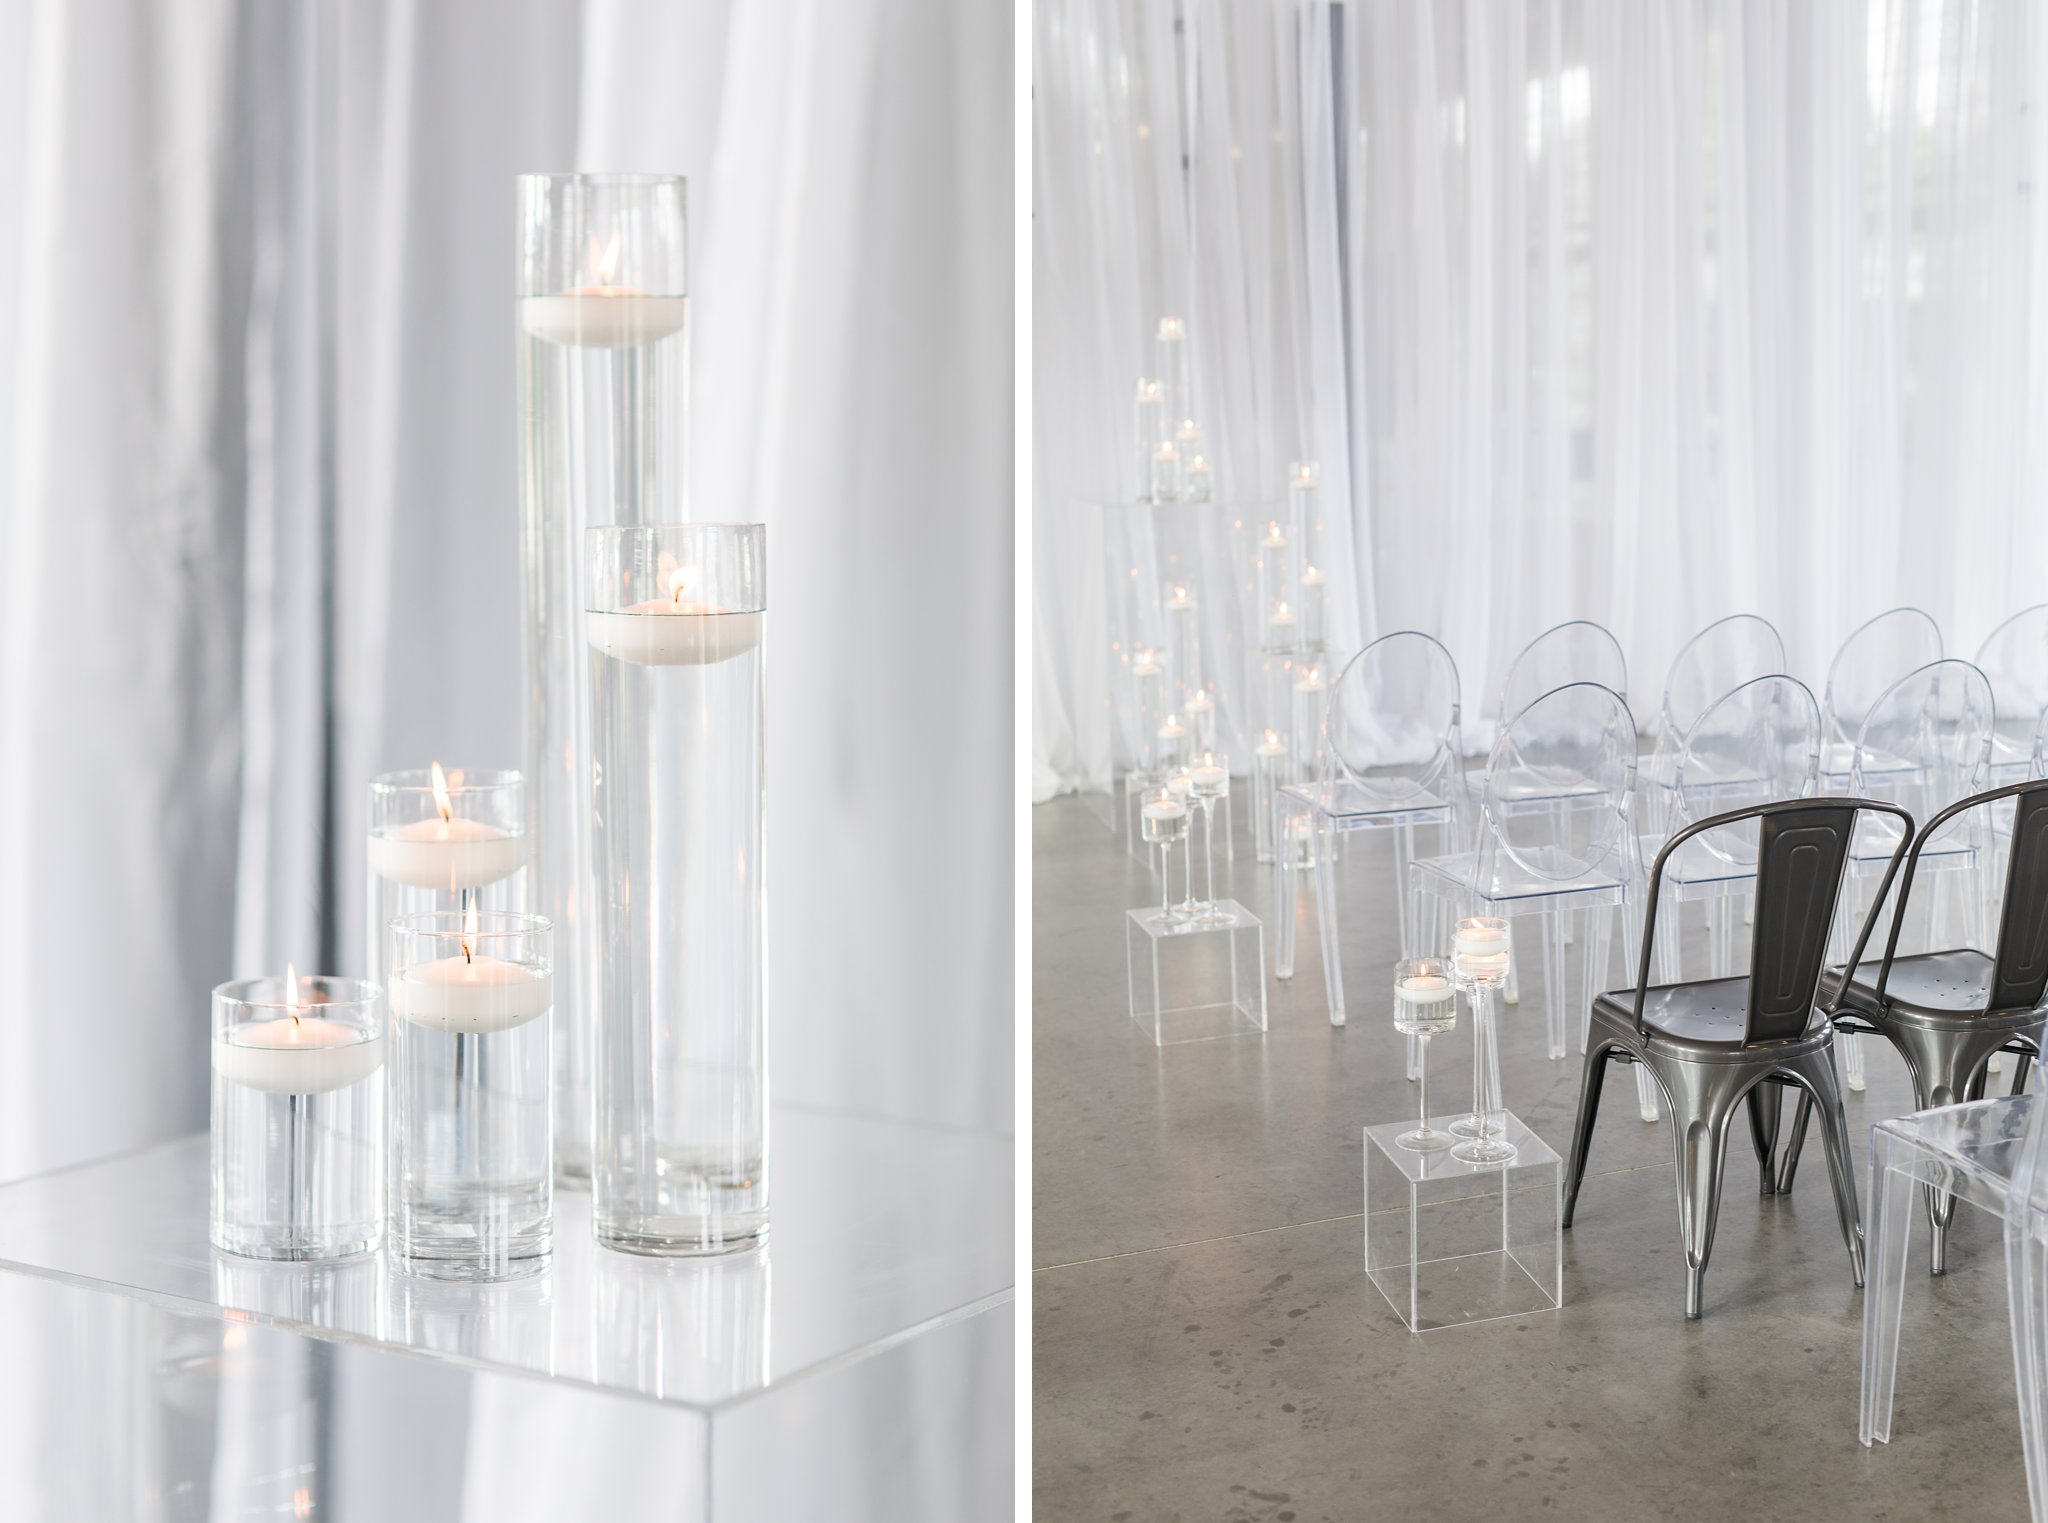 Industrial chairs floating candles Horticulture Building wedding at Lansdowne Amy Pinder Photography